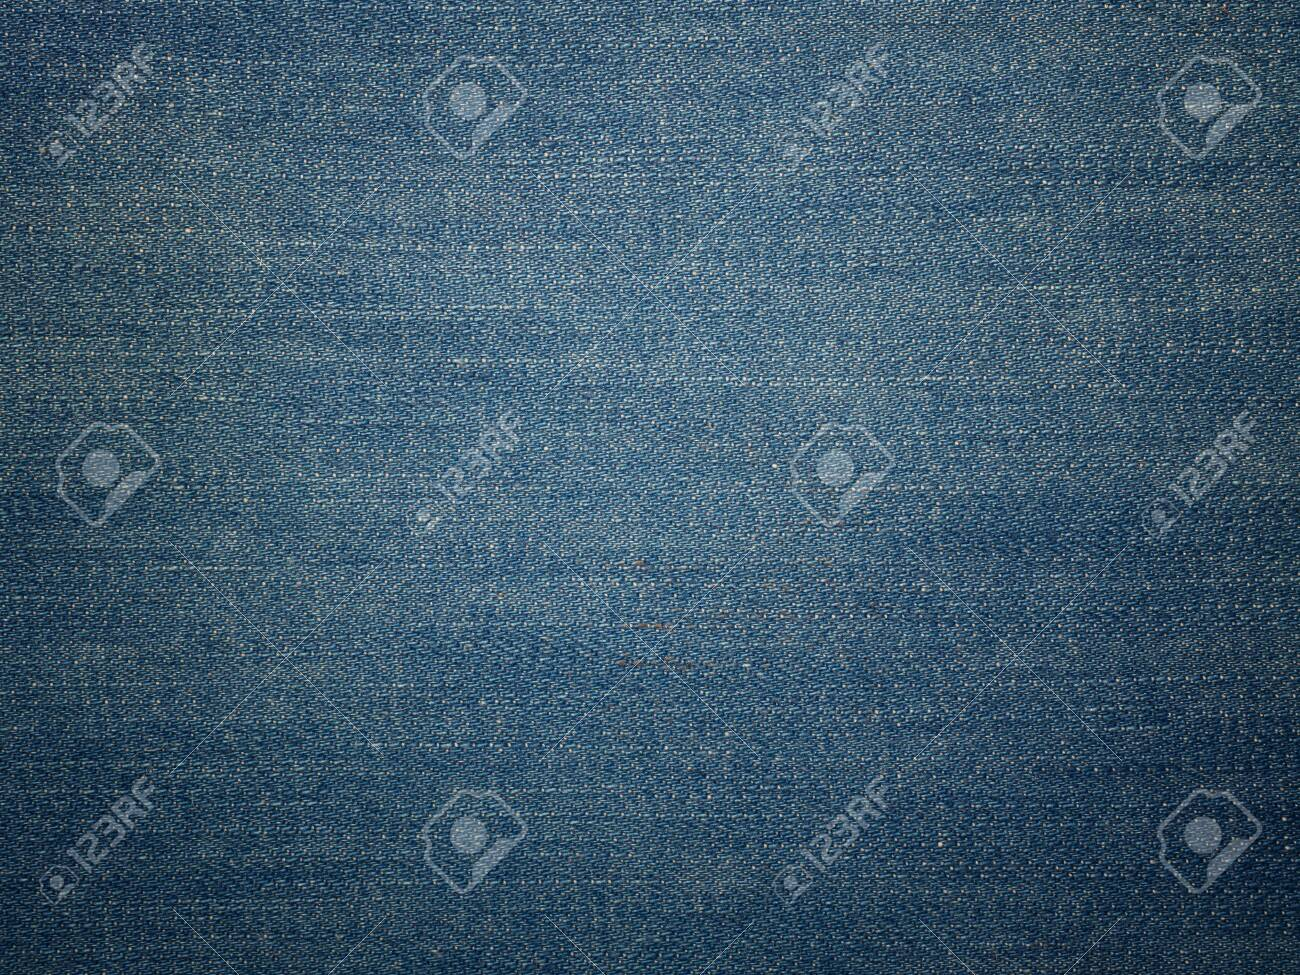 background of blue jeans denim texture. (Used for background image , Or design work) - 136967605